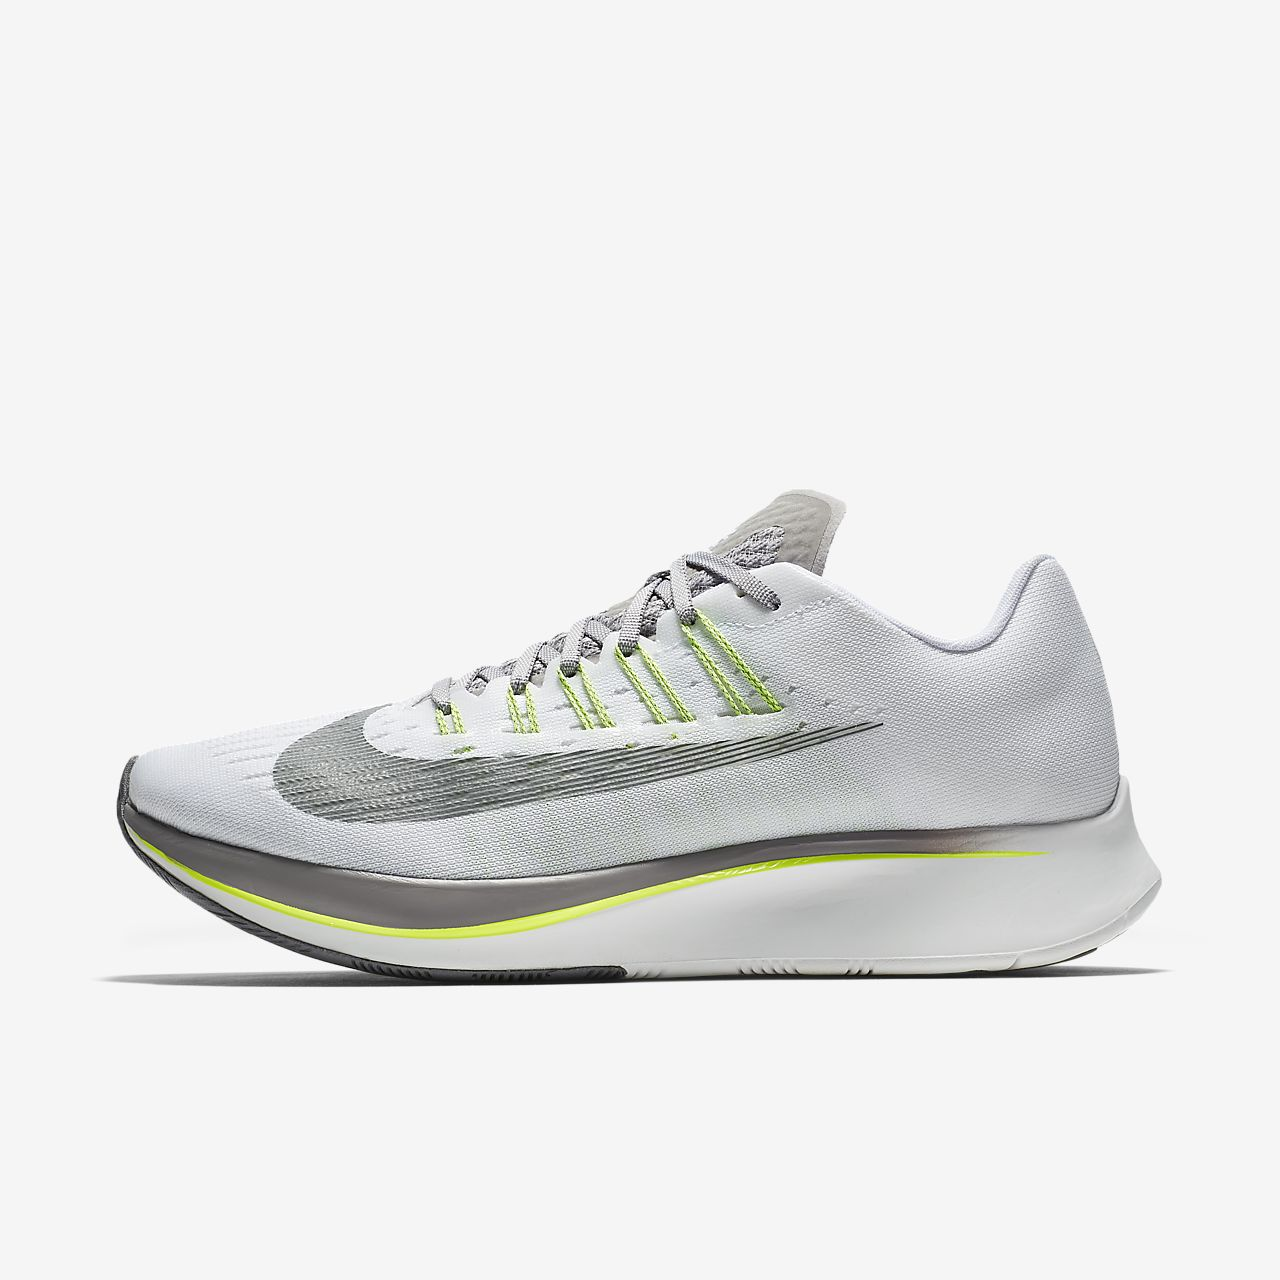 7018aa4dee Nike Zoom Fly Men s Running Shoe. Nike.com